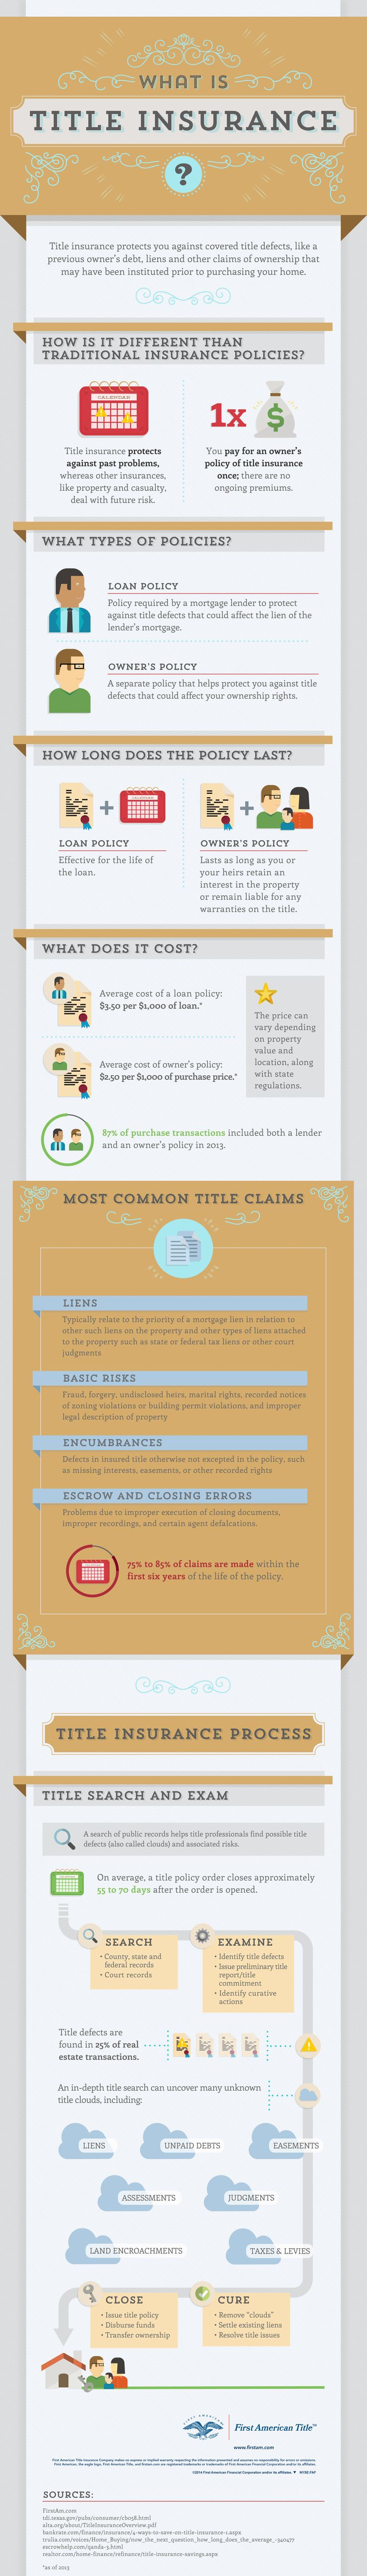 Undiscovered title issues – like liens and forgeries – can impact your home ownership rights. Title insurance helps protect American homebuyers.